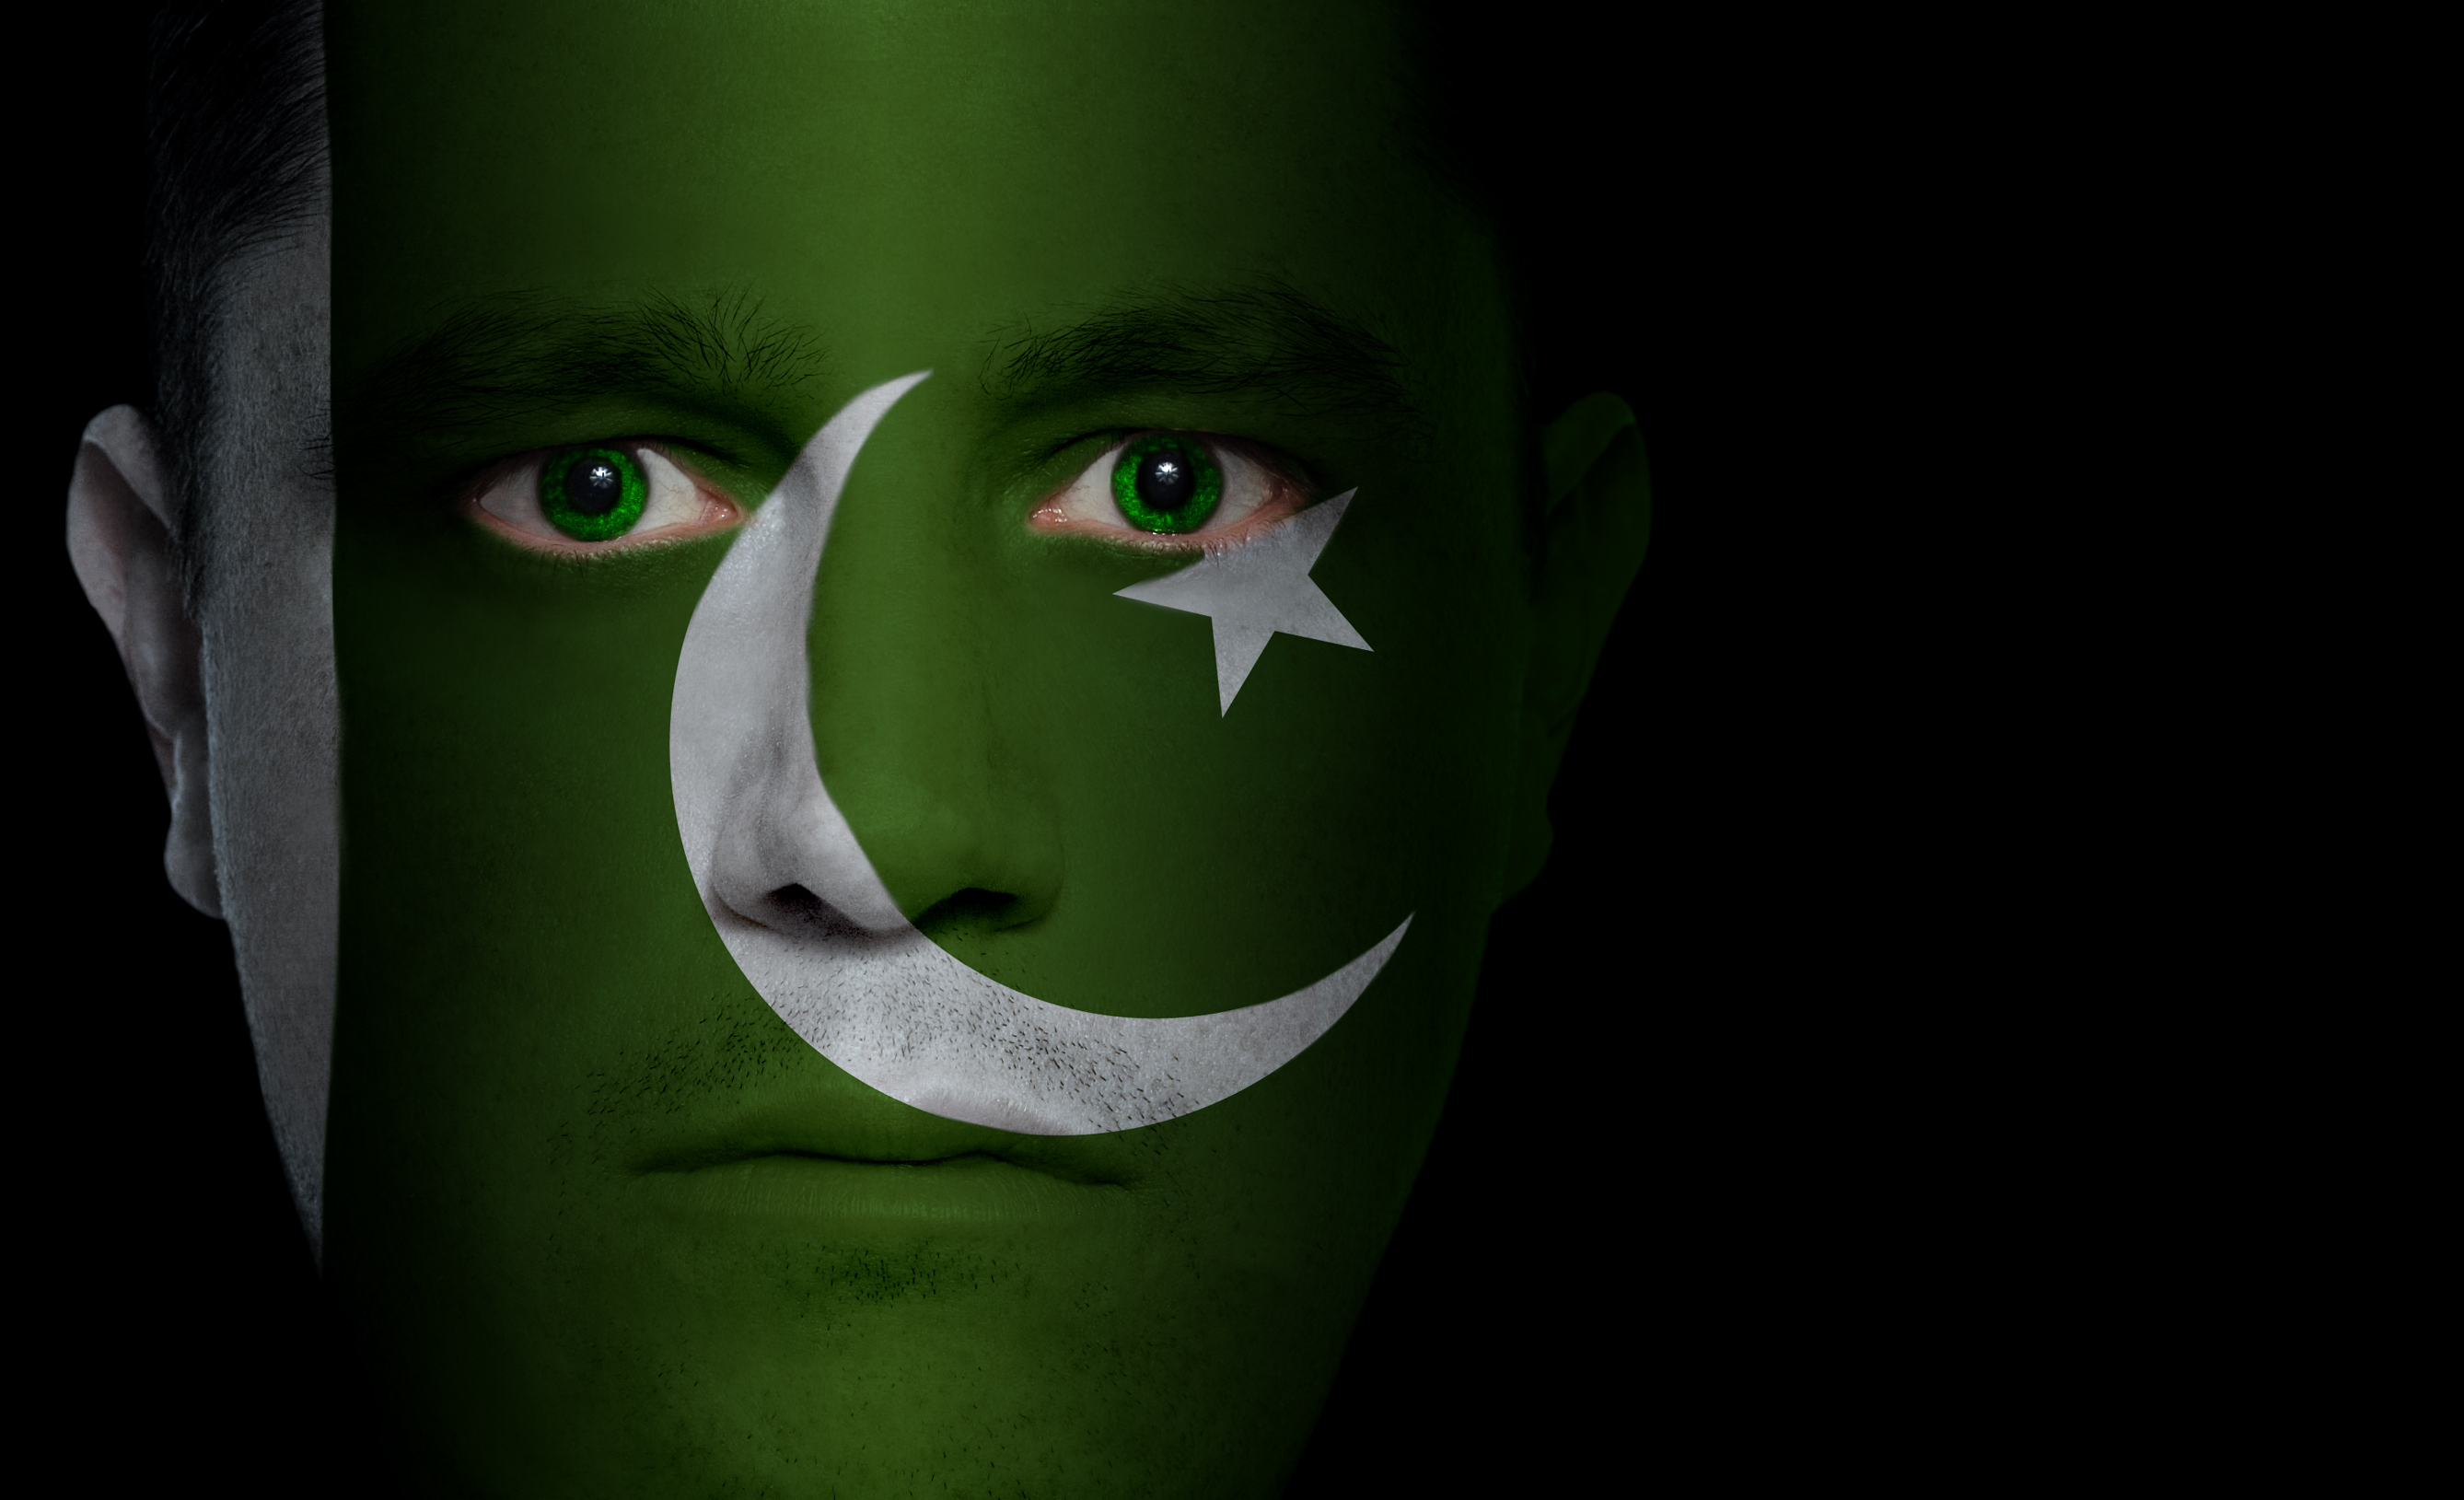 Urdu Translation Services- Flag of Pakistan projected onto a man's face